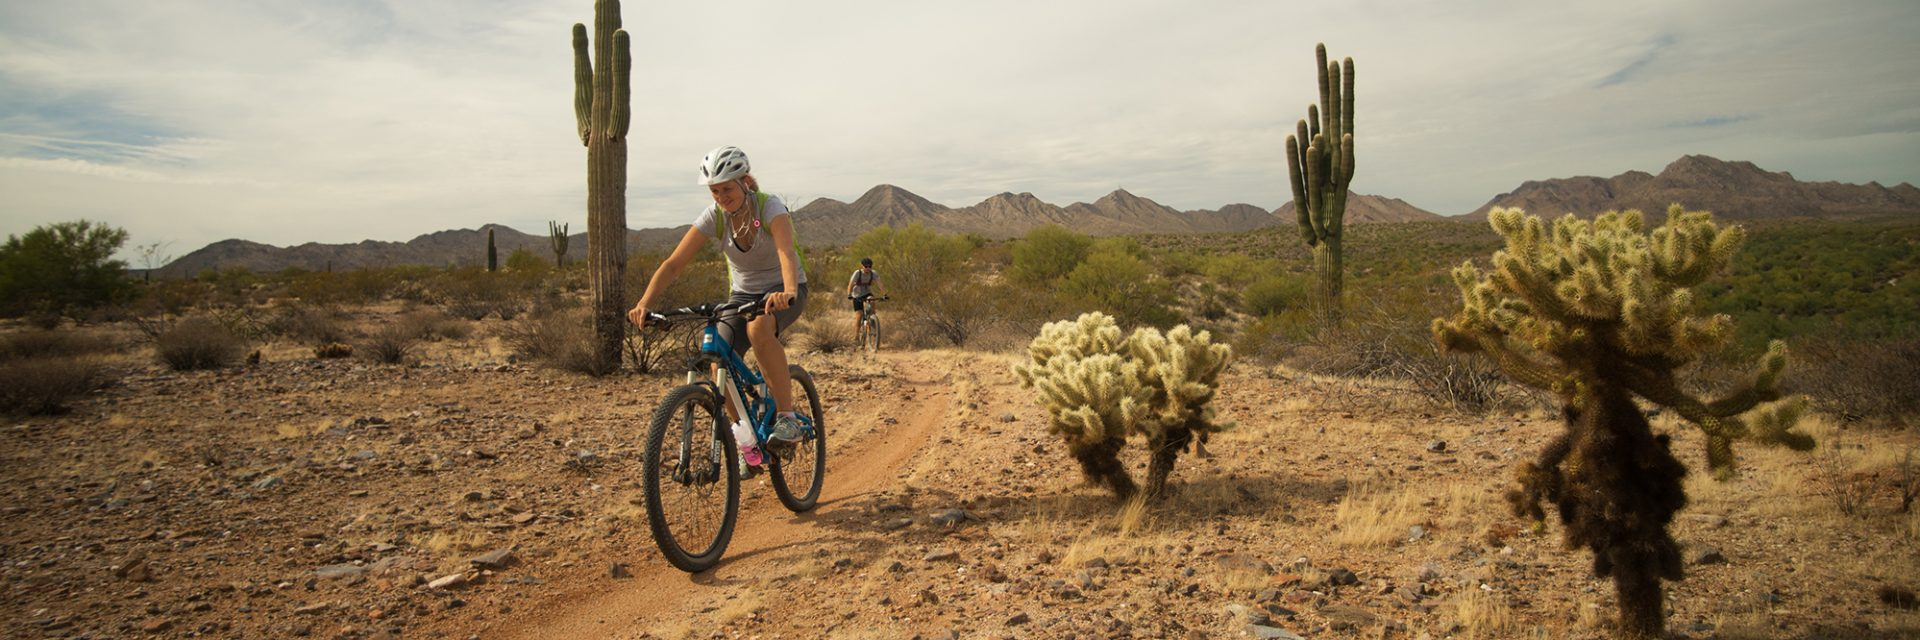 Ridge above South Wash, Long Loop, McDowell Competitive Track, Arizona's Sonoran Desert guided mtb tour near Phoenix, AZ